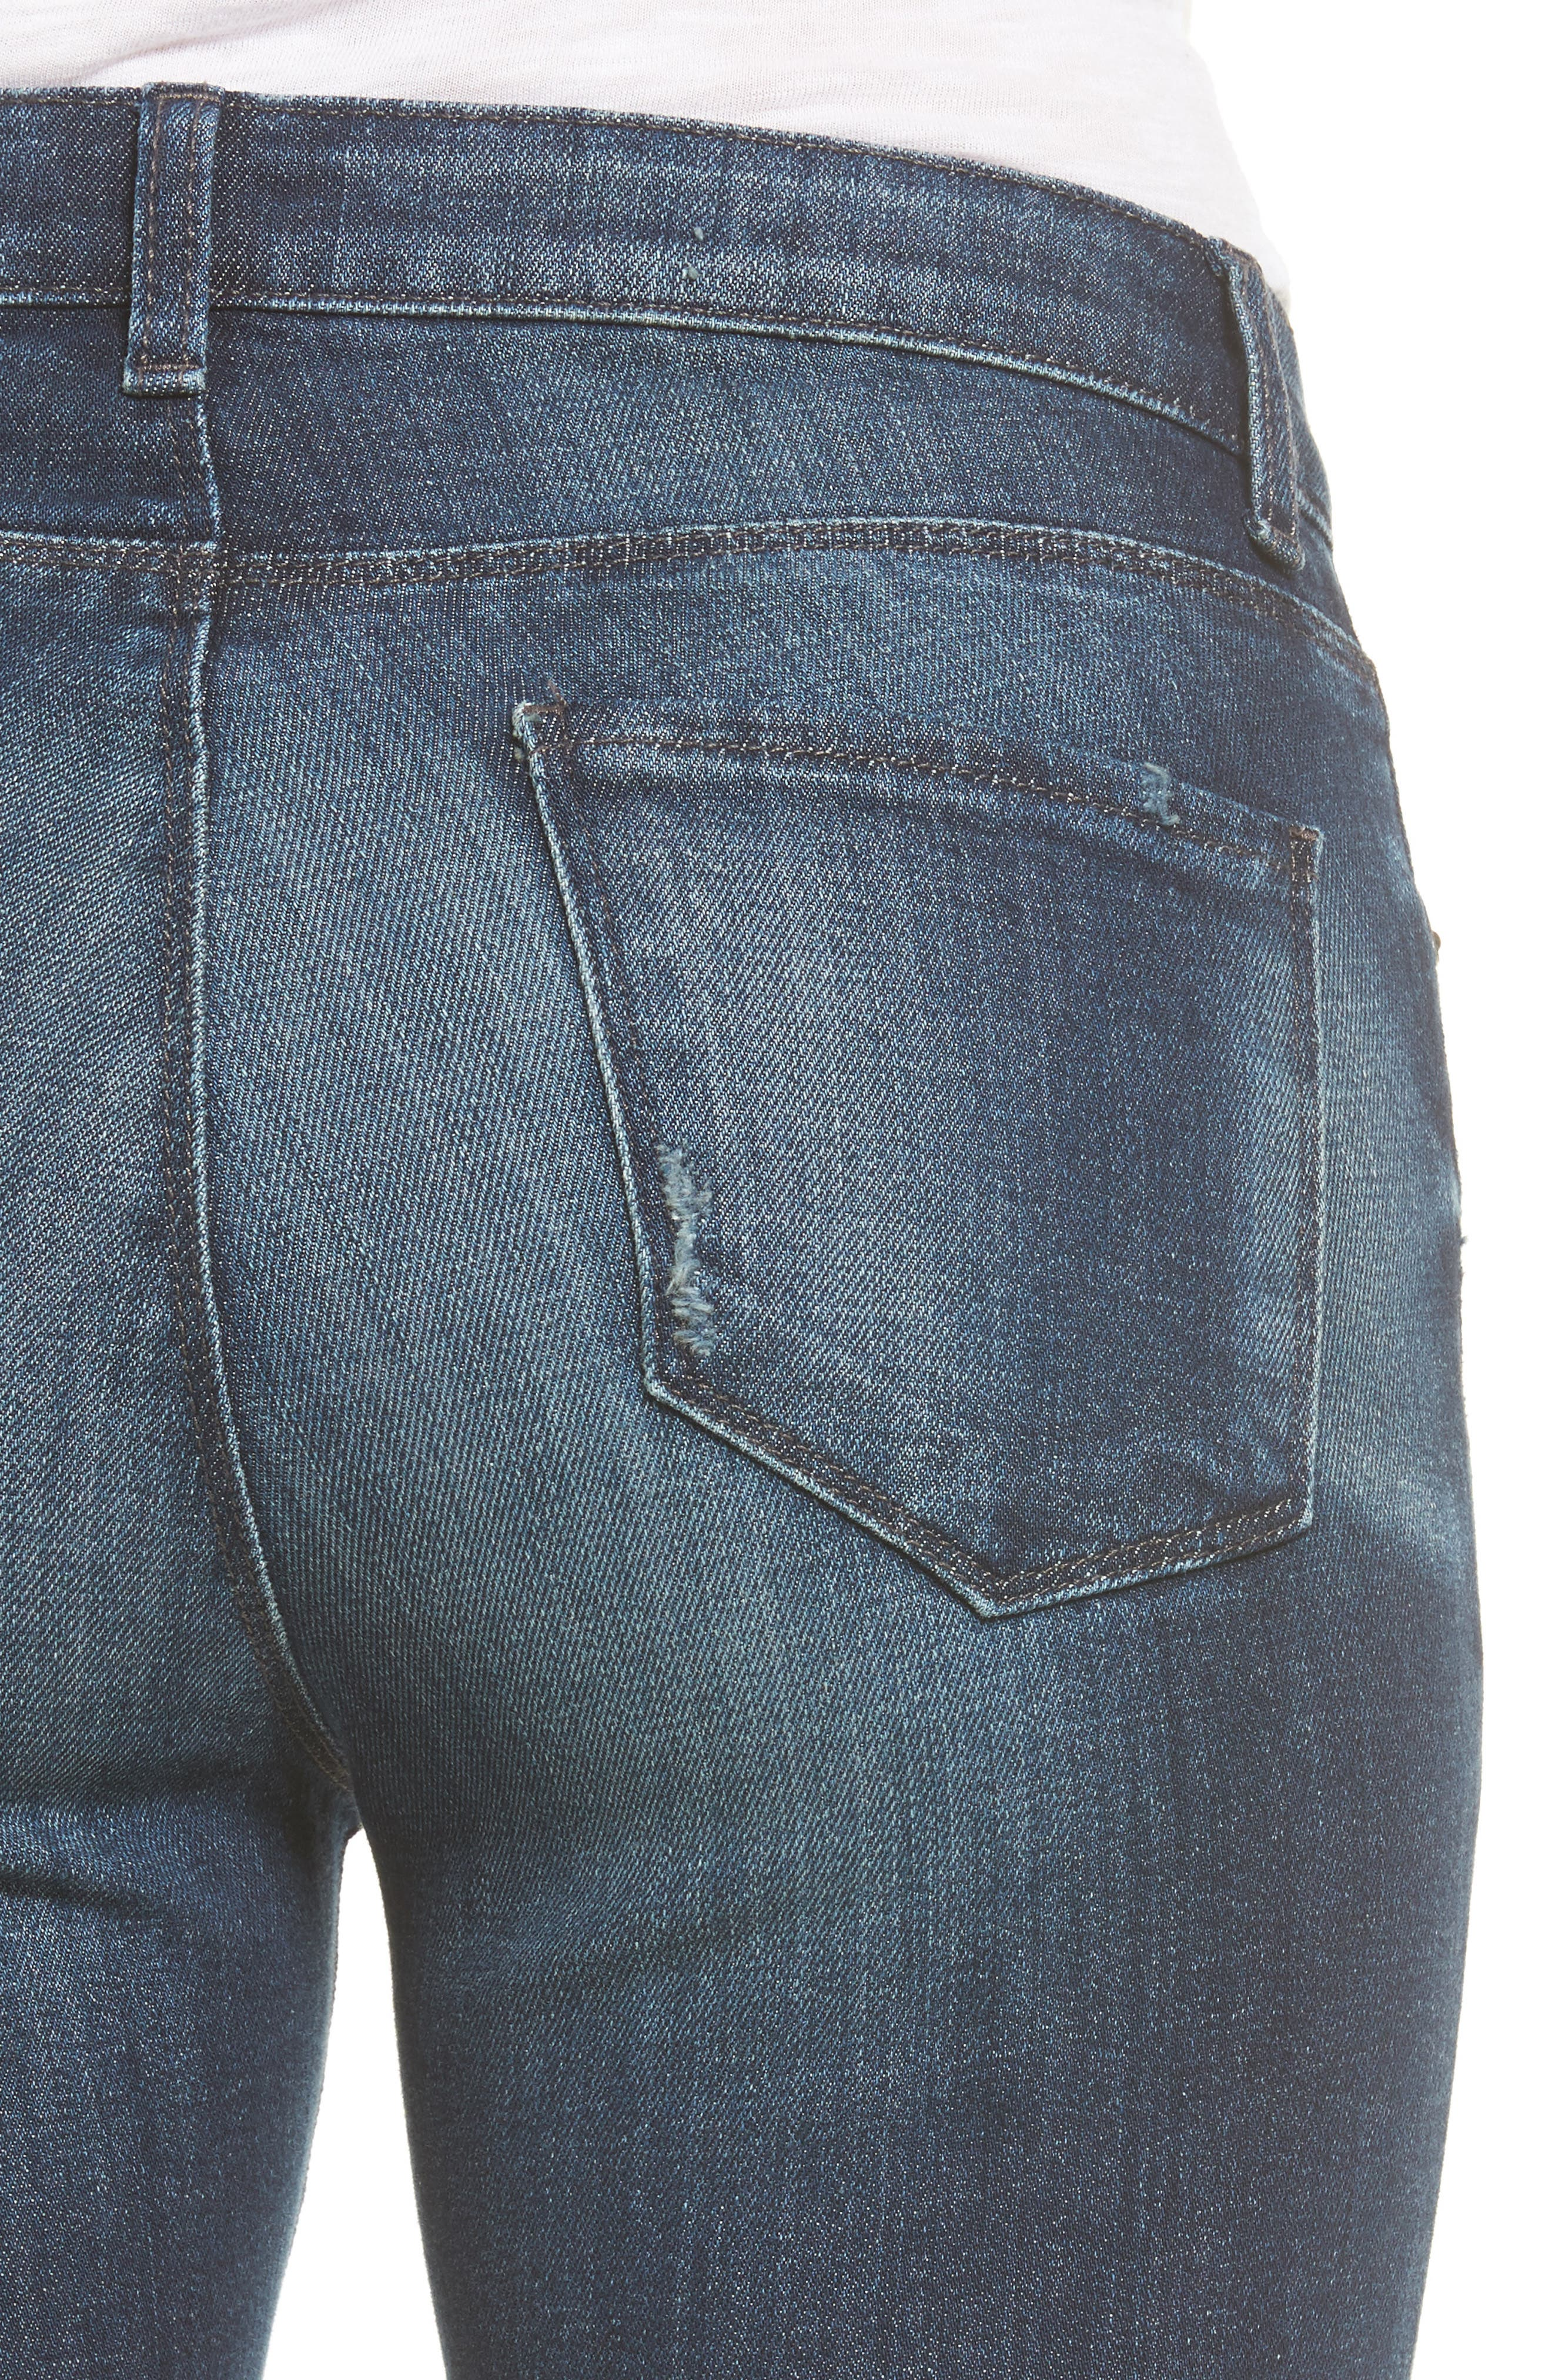 Alternate Image 4  - KUT from the Kloth Reese Release Hem Ankle Jeans (Prevailing)